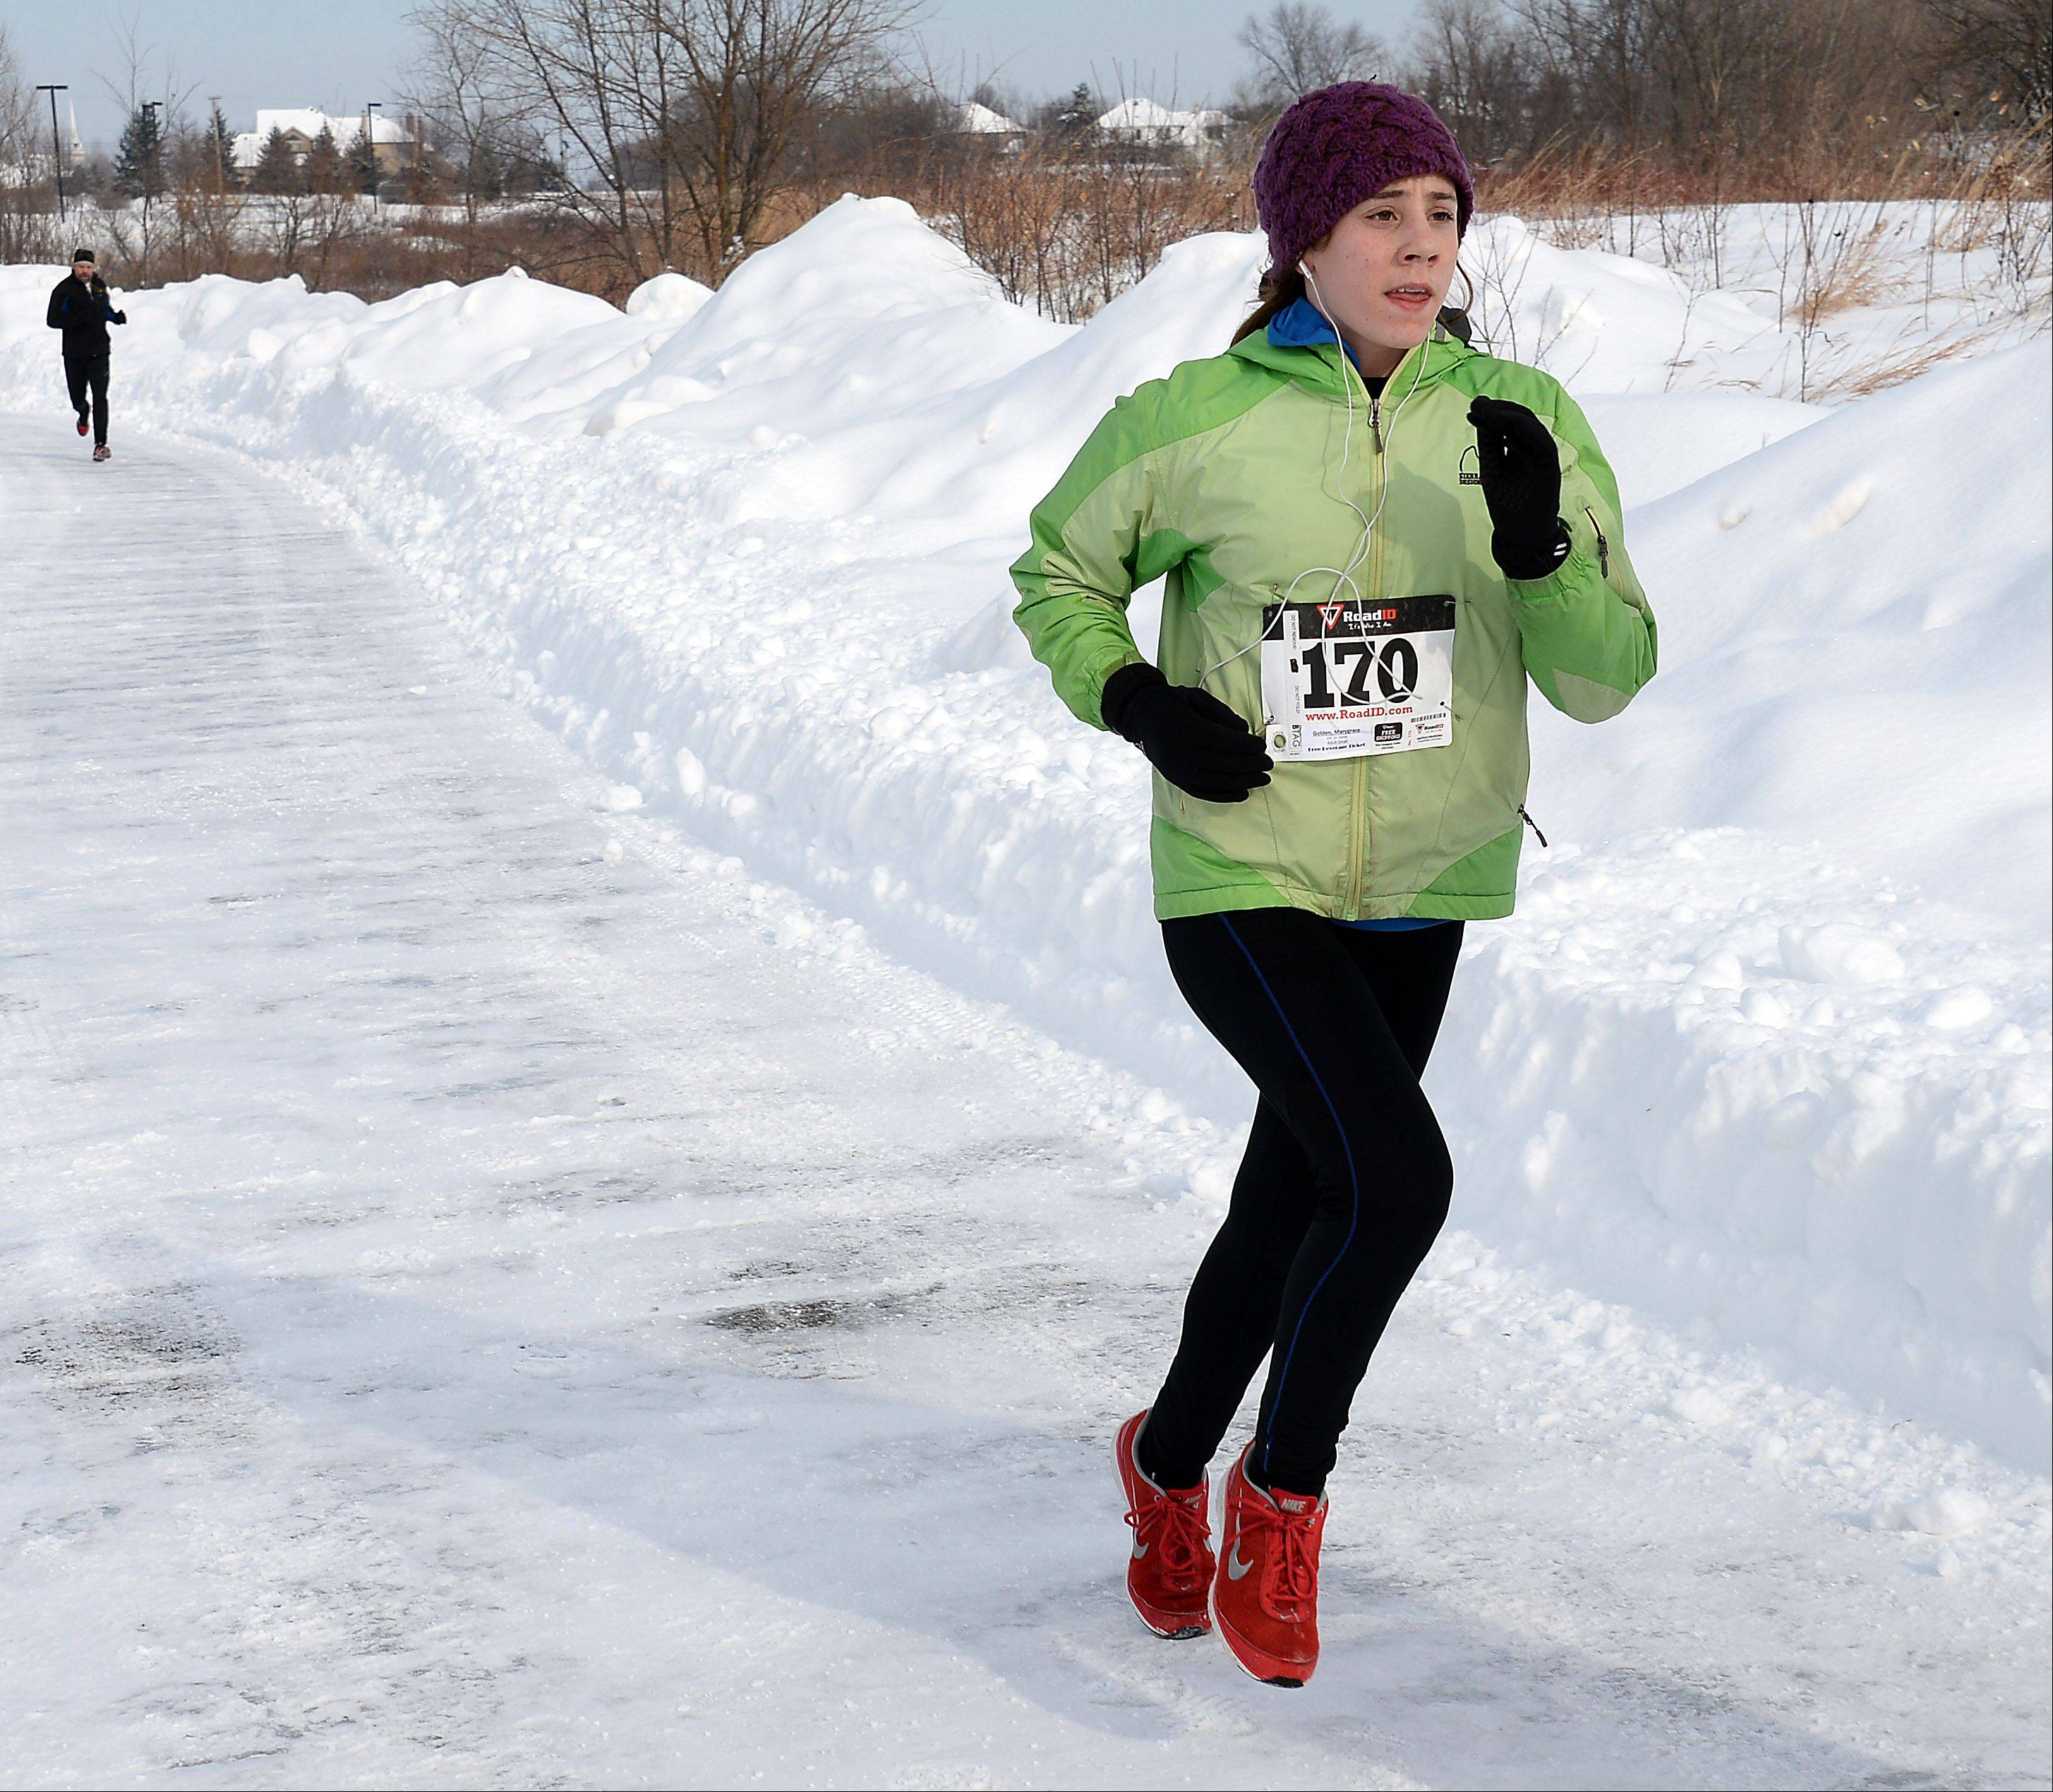 Mary Grace Golden, 14, of Batavia, finishes first in the woman's division of the Geneva Park District's 4th annual Super Shuffle 5K race on Sunday.